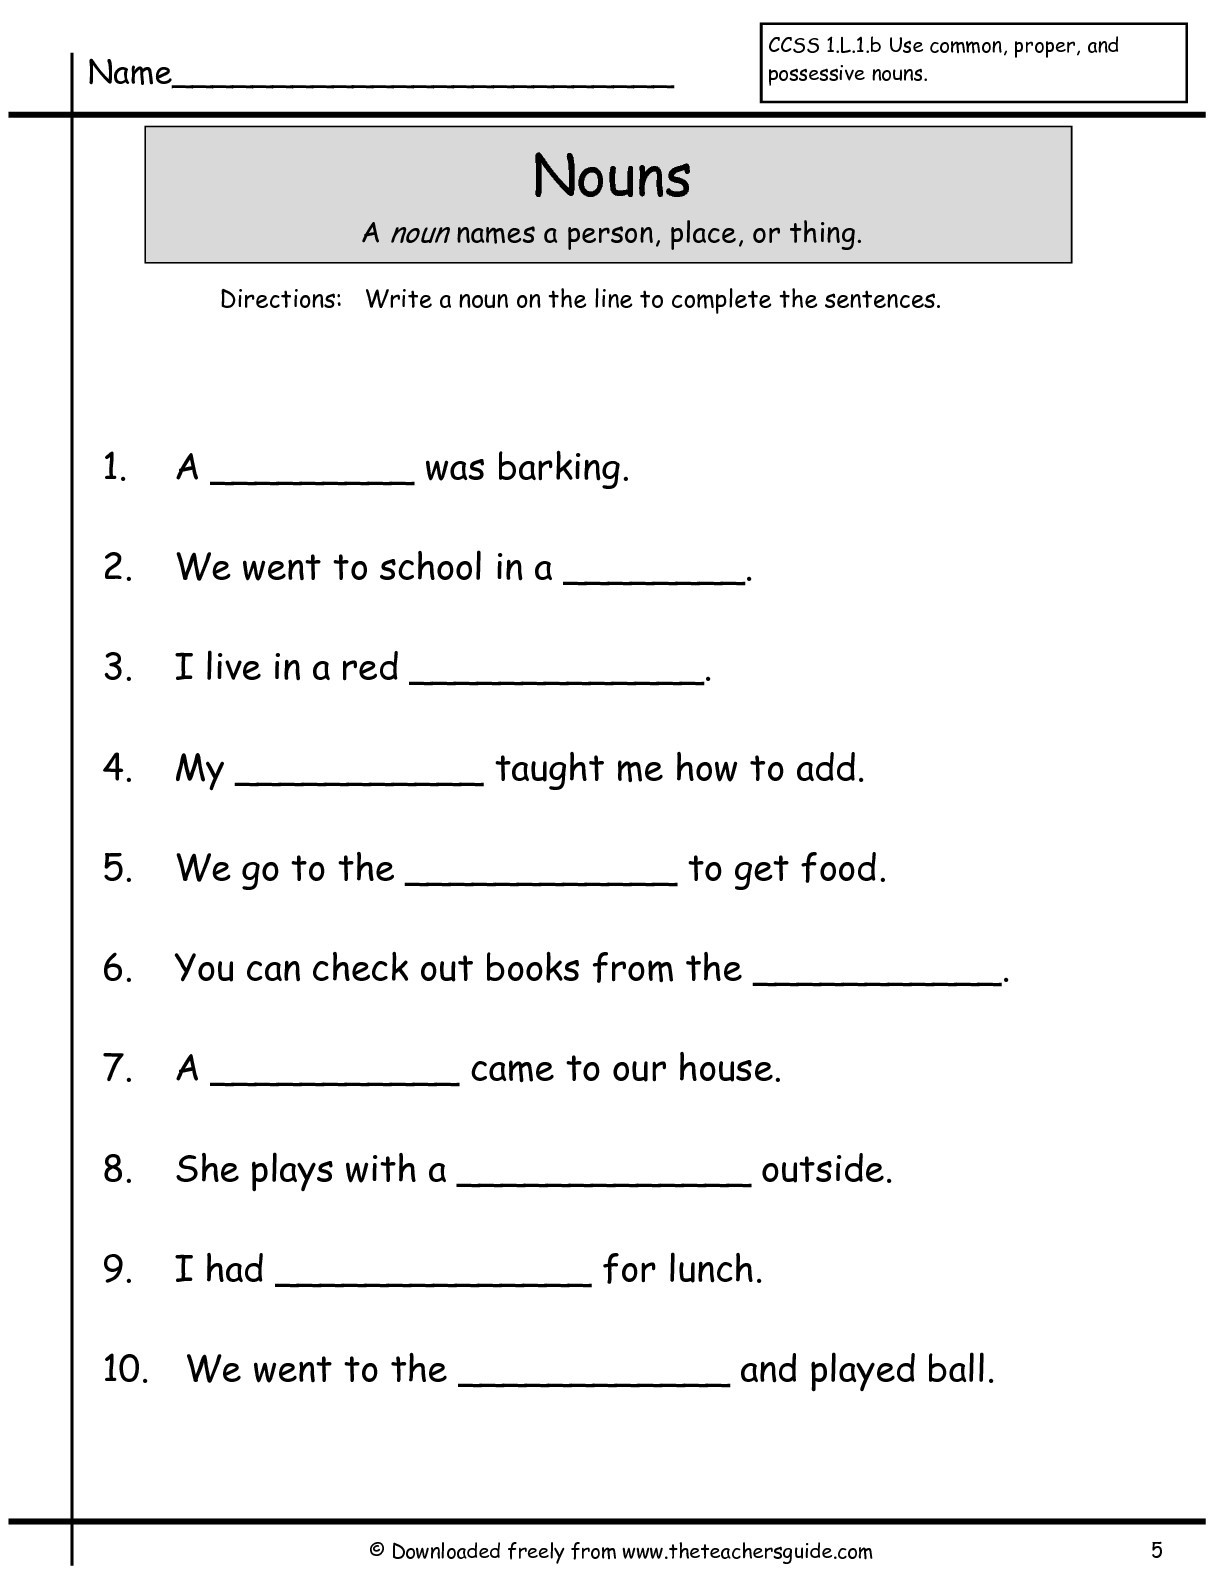 Complete Sentences Worksheet 1st Grade Mcgraw Hill Wonders 1st Grade Resources and Printouts for